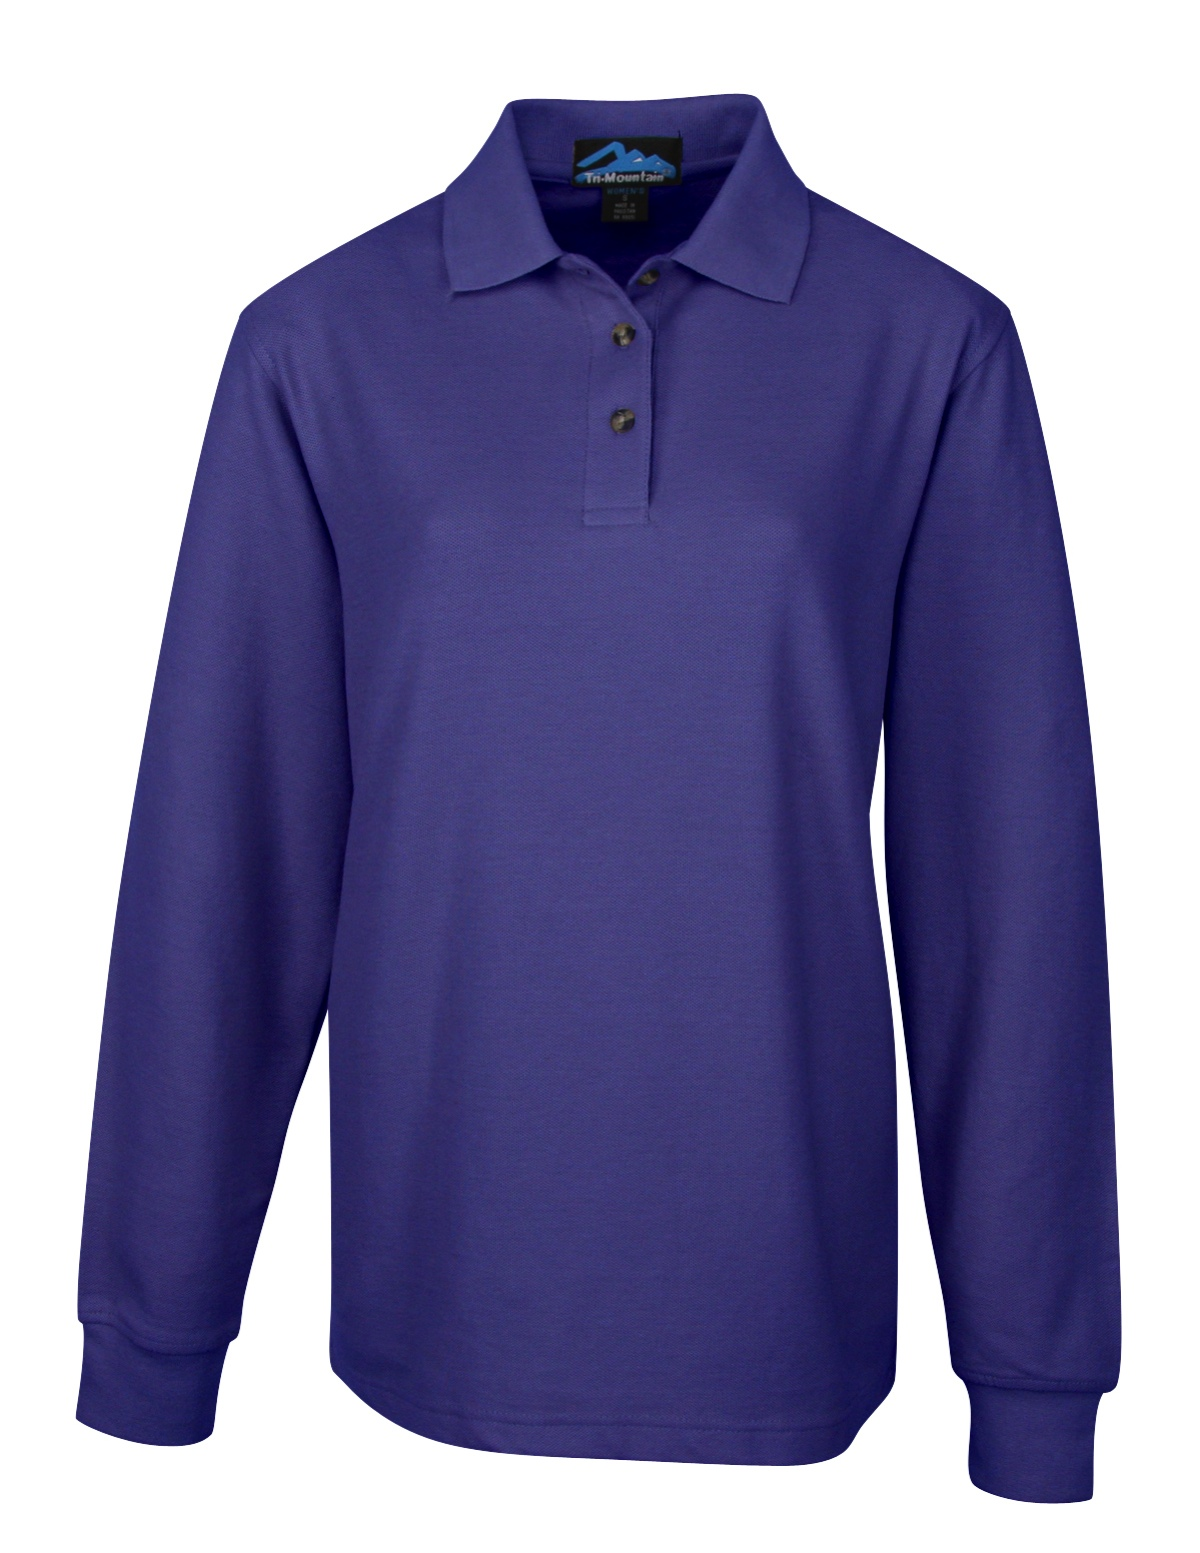 602 Victory Tri-Mountain Ladies Long Sleeve Polo